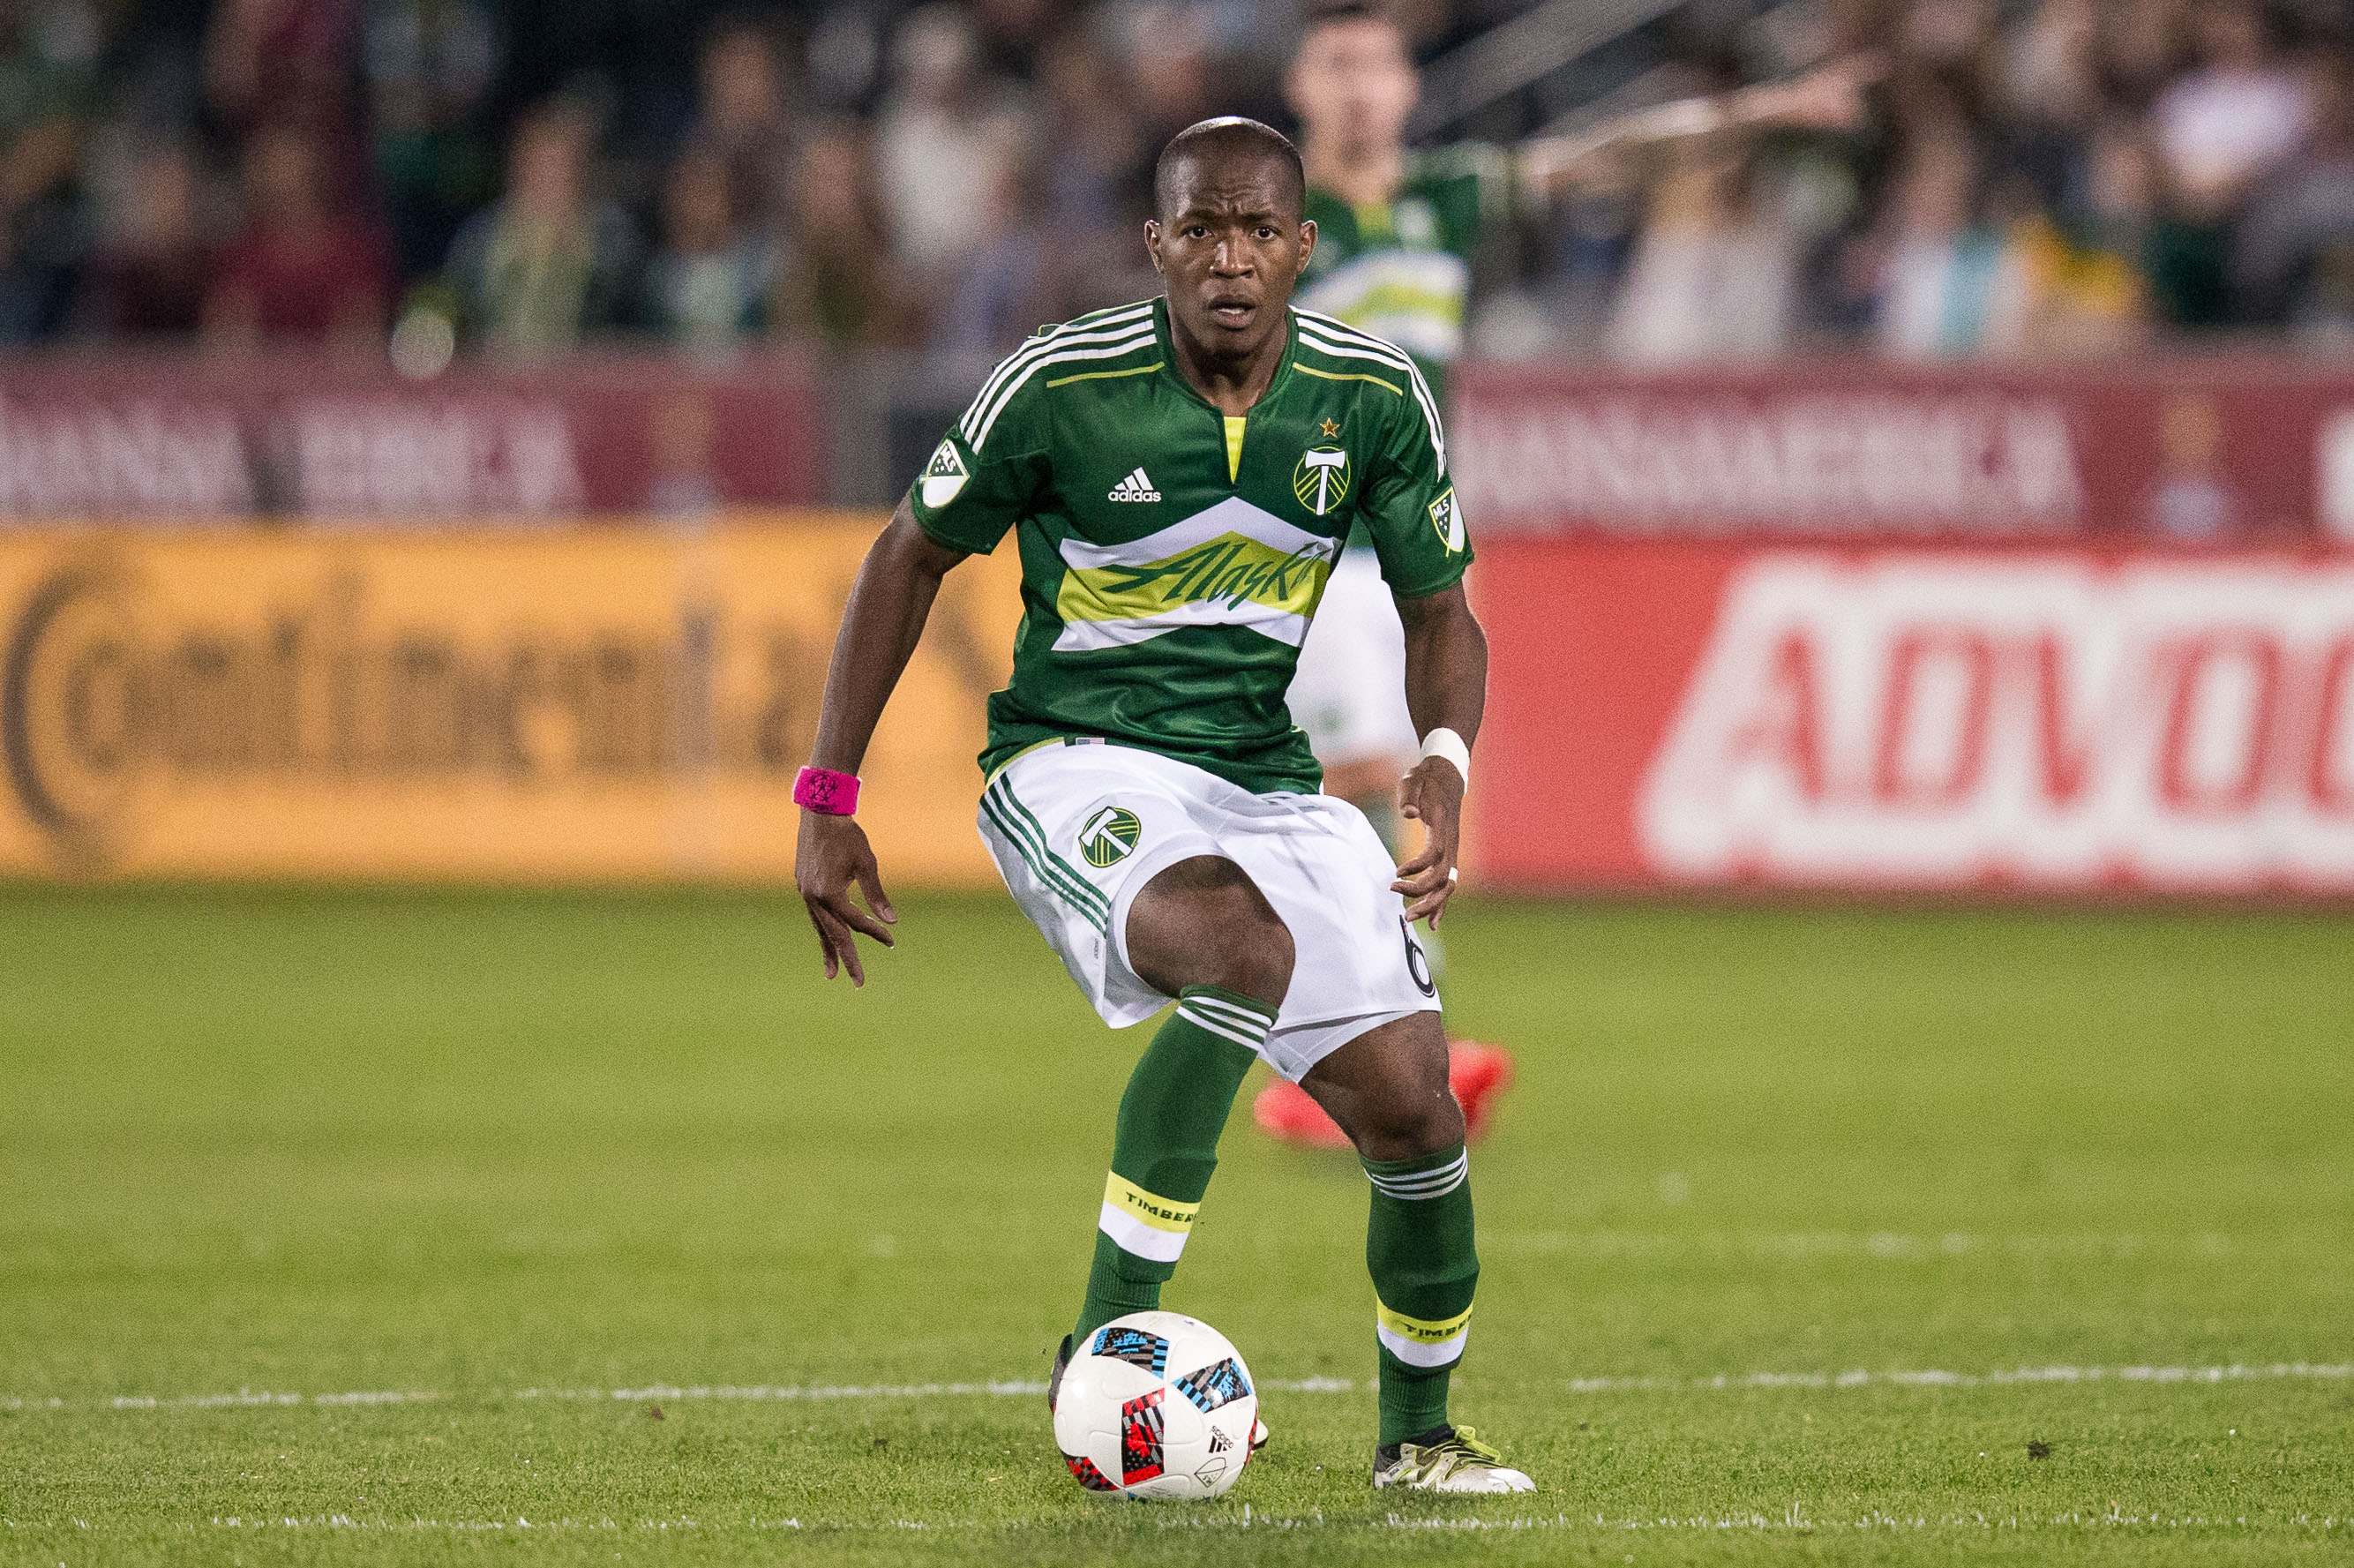 Oct 1, 2016; Commerce City, CO, USA; Portland Timbers midfielder Darlington Nagbe (6) controls the ball in the first half against the Colorado Rapids at Dick's Sporting Goods Park. Mandatory Credit: Isaiah J. Downing-USA TODAY Sports